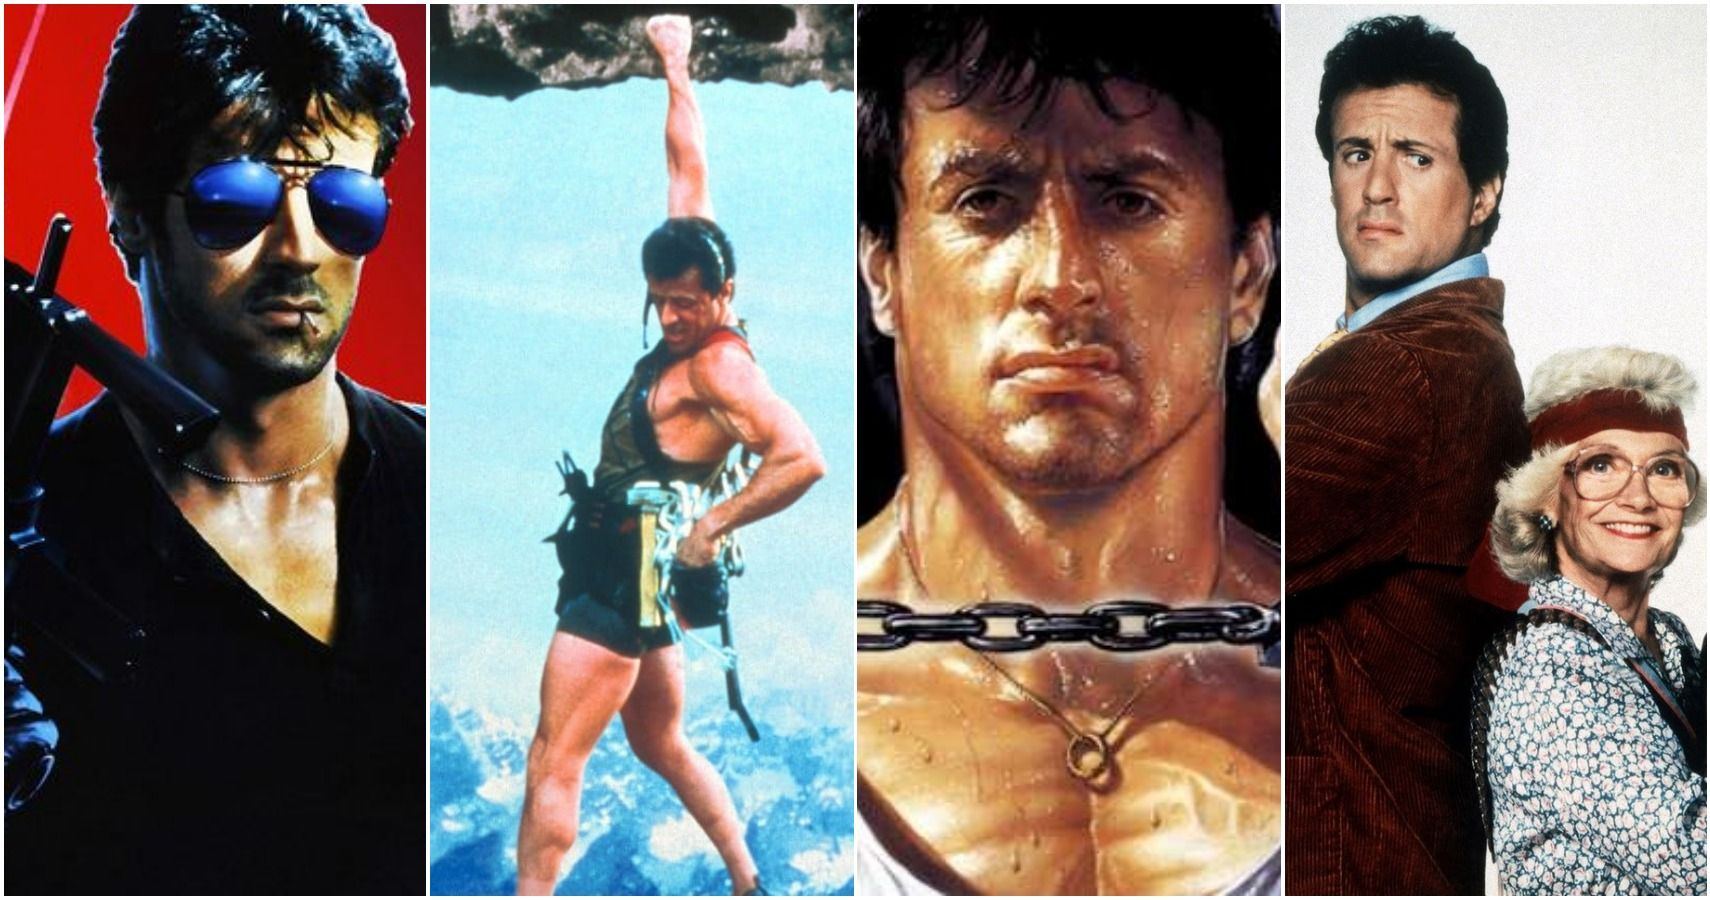 Sylvester Stallone 5 Of His Old Movies That Deserve A Belated Sequel 5 That Don T